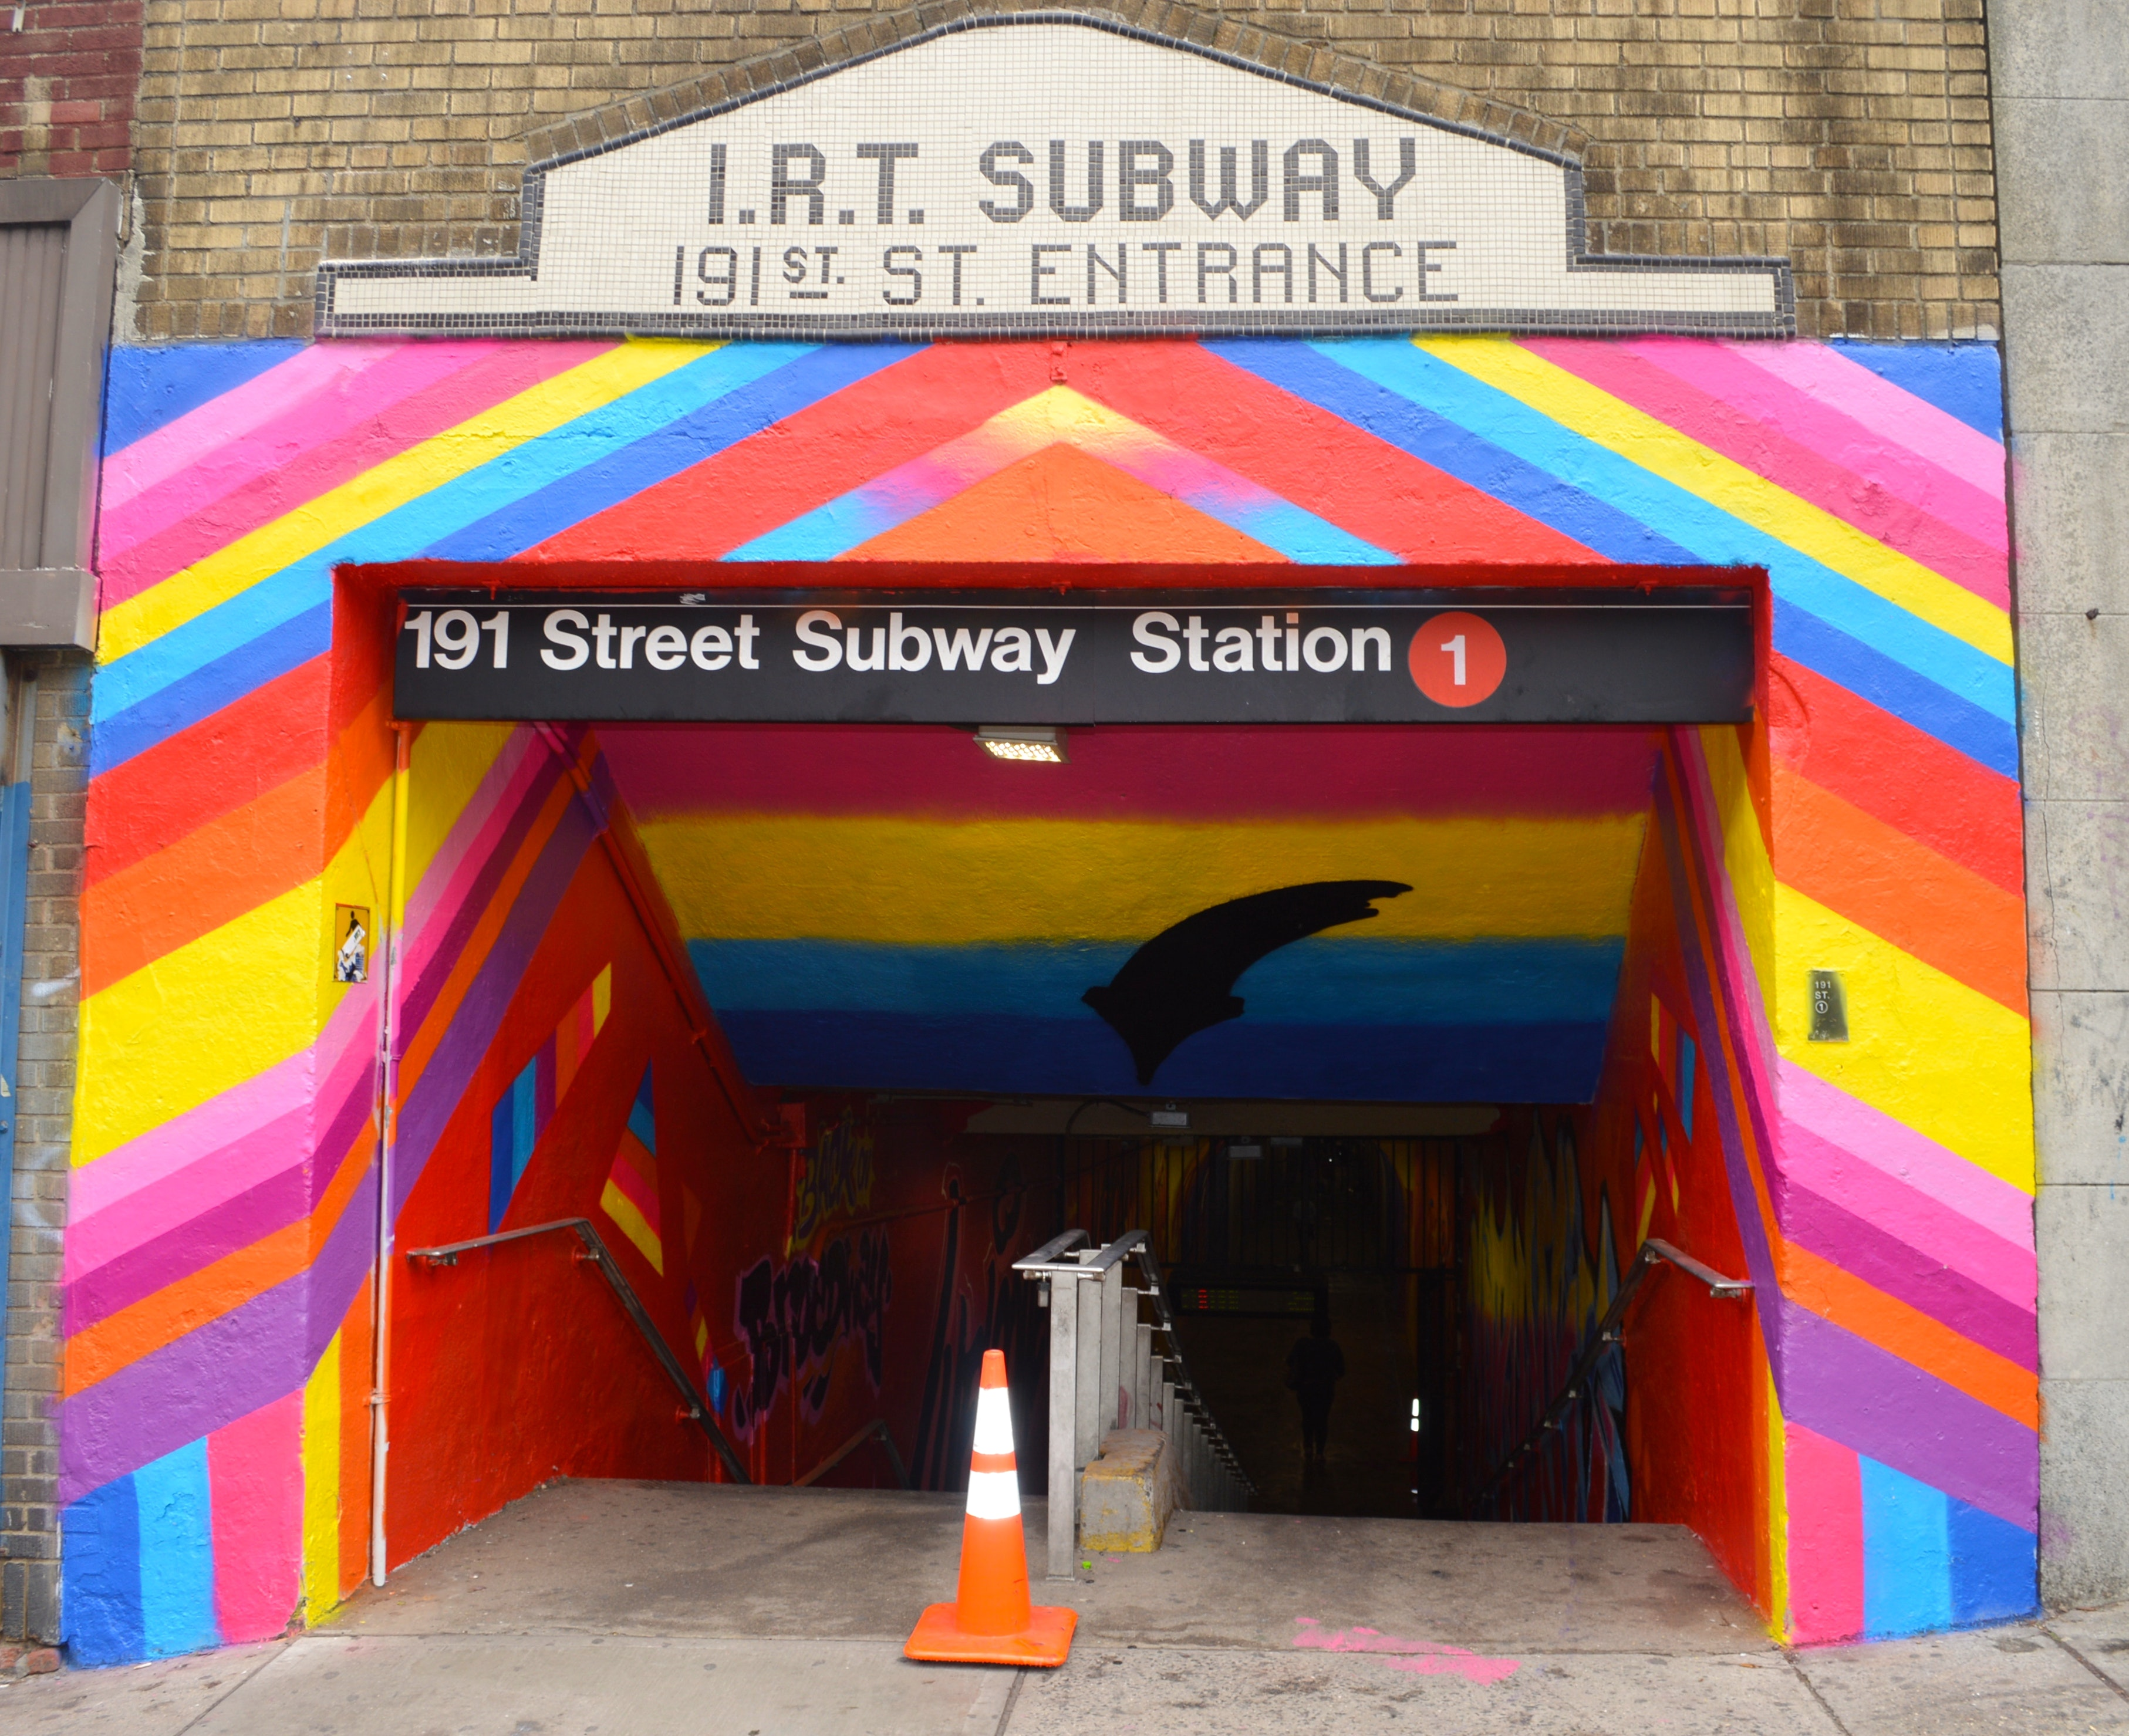 191 St. Subway Station Entrance after the DOT Beautification Project